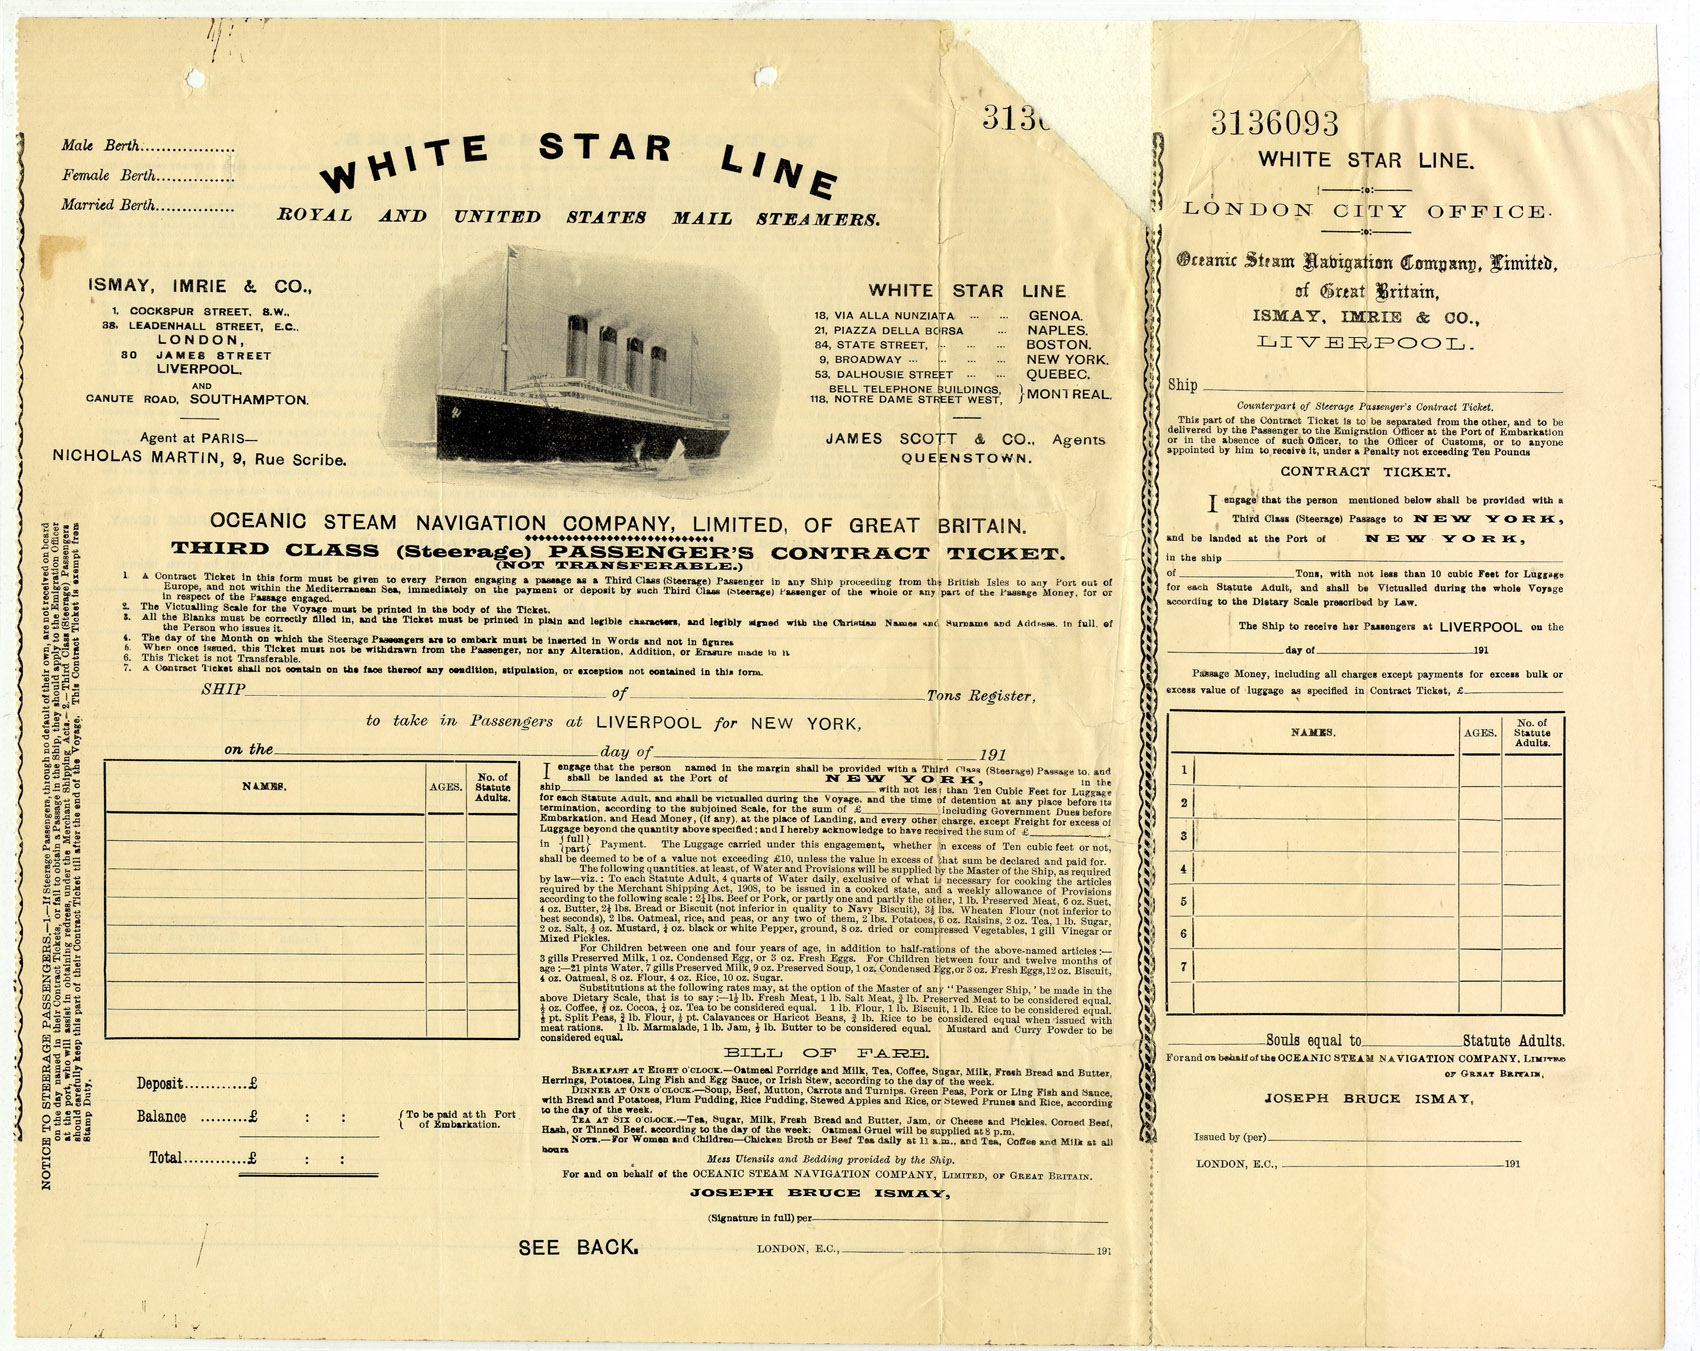 Sample Essay Thesis A Thirdclass Steerage Passenger S Contract Ticket For The White Star  Line Similar To Those Used On The Titanic Records Of District Courts Of  The  Essay On Paper also High School Sample Essay They Said It Couldnt Sink  National Archives Apa Format Essay Paper